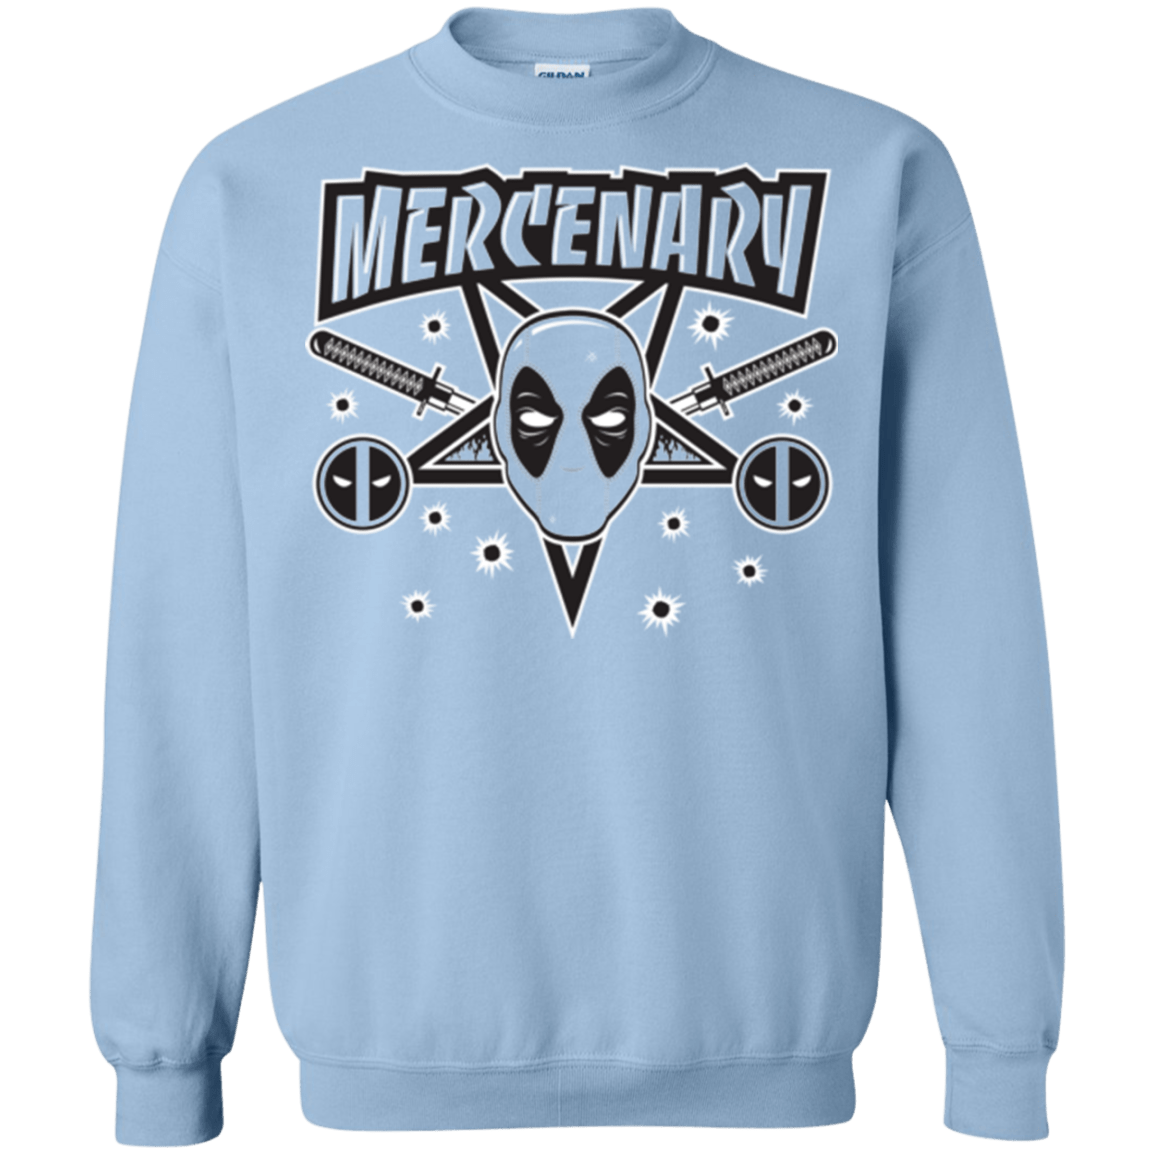 Sweatshirts Light Blue / Small Mercenary (1) Crewneck Sweatshirt